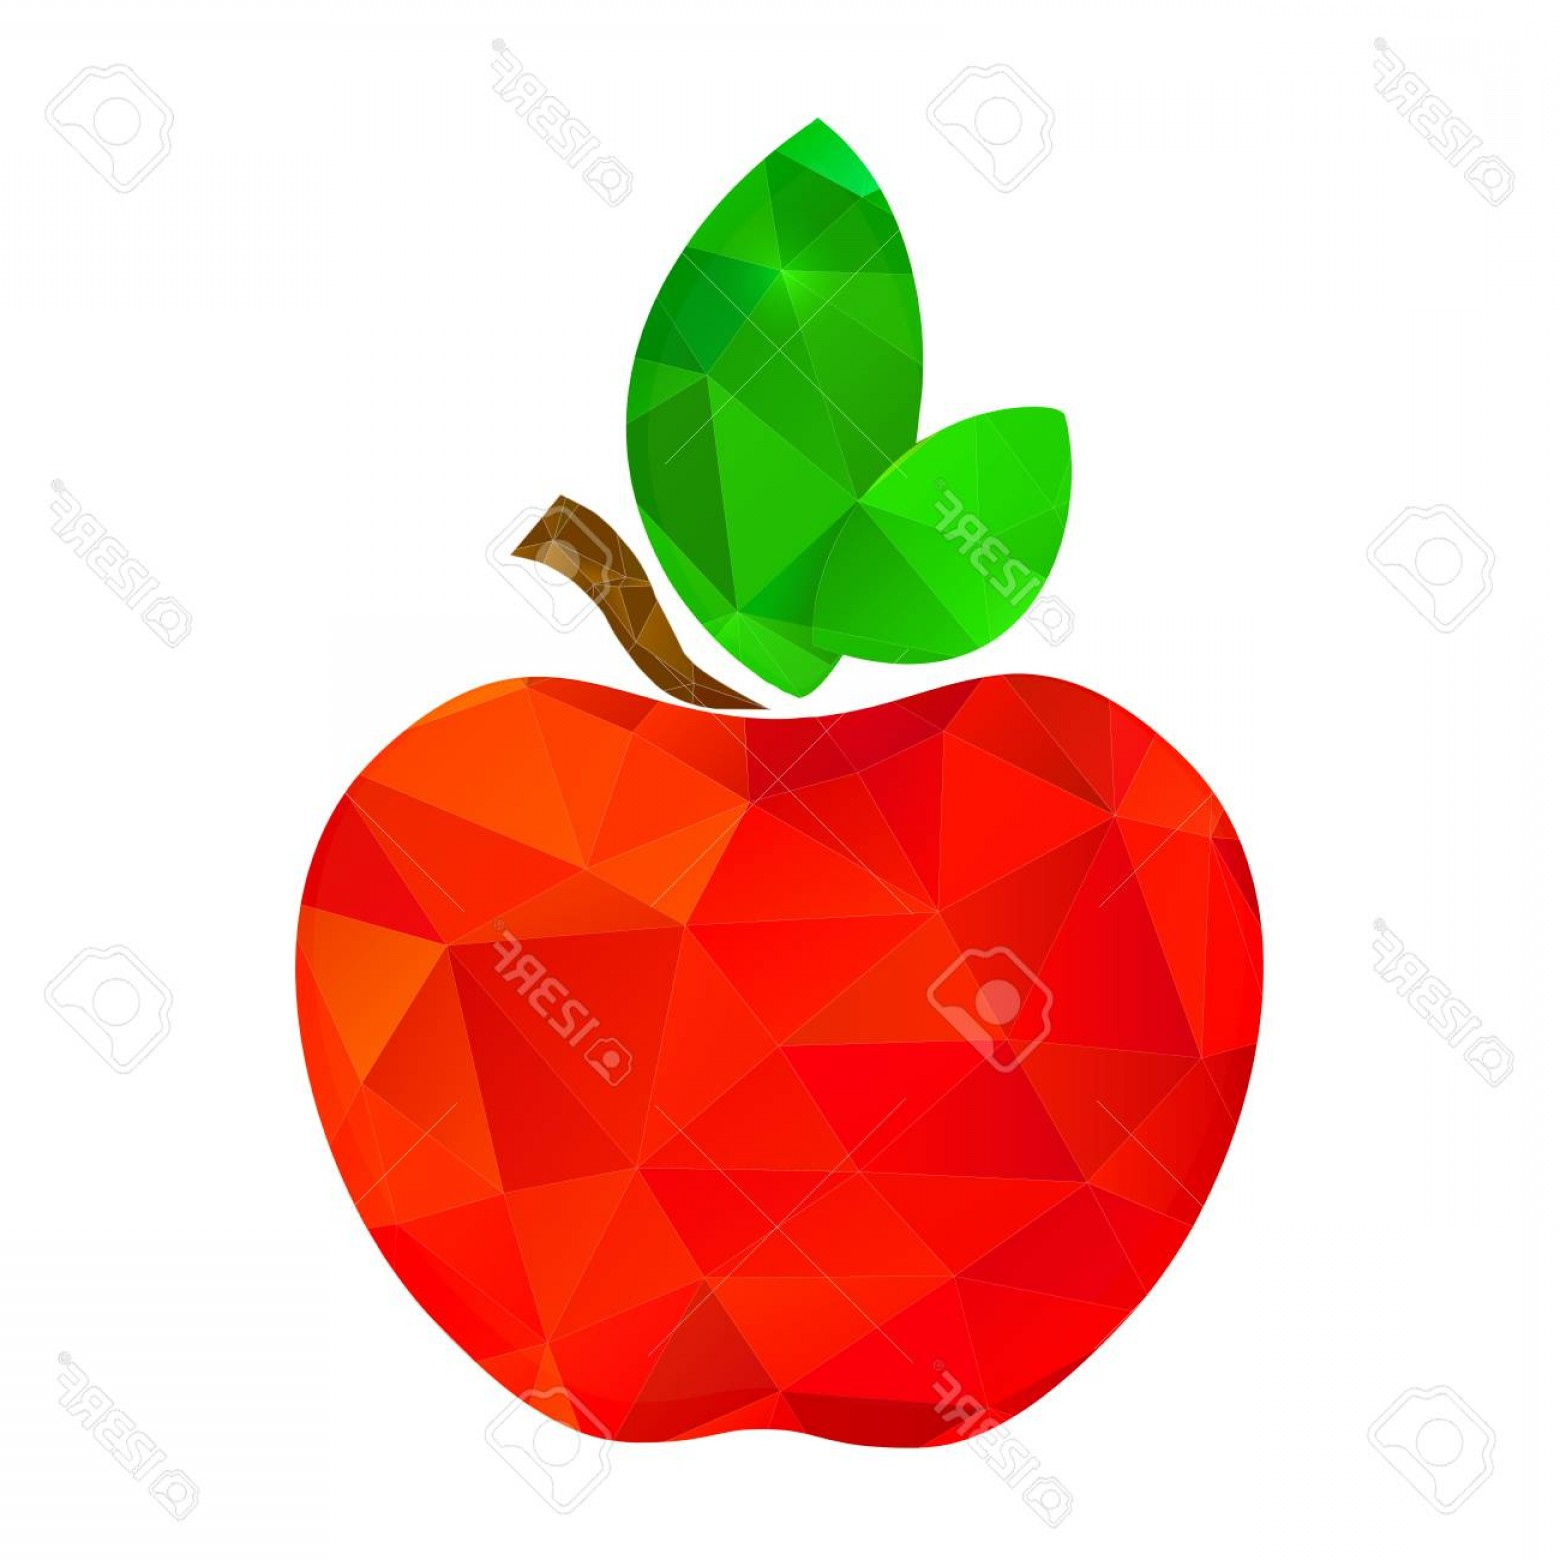 Red Apple Vector Logo: Photostock Vector Red Apple Vector Polygon With Two Green Leaves